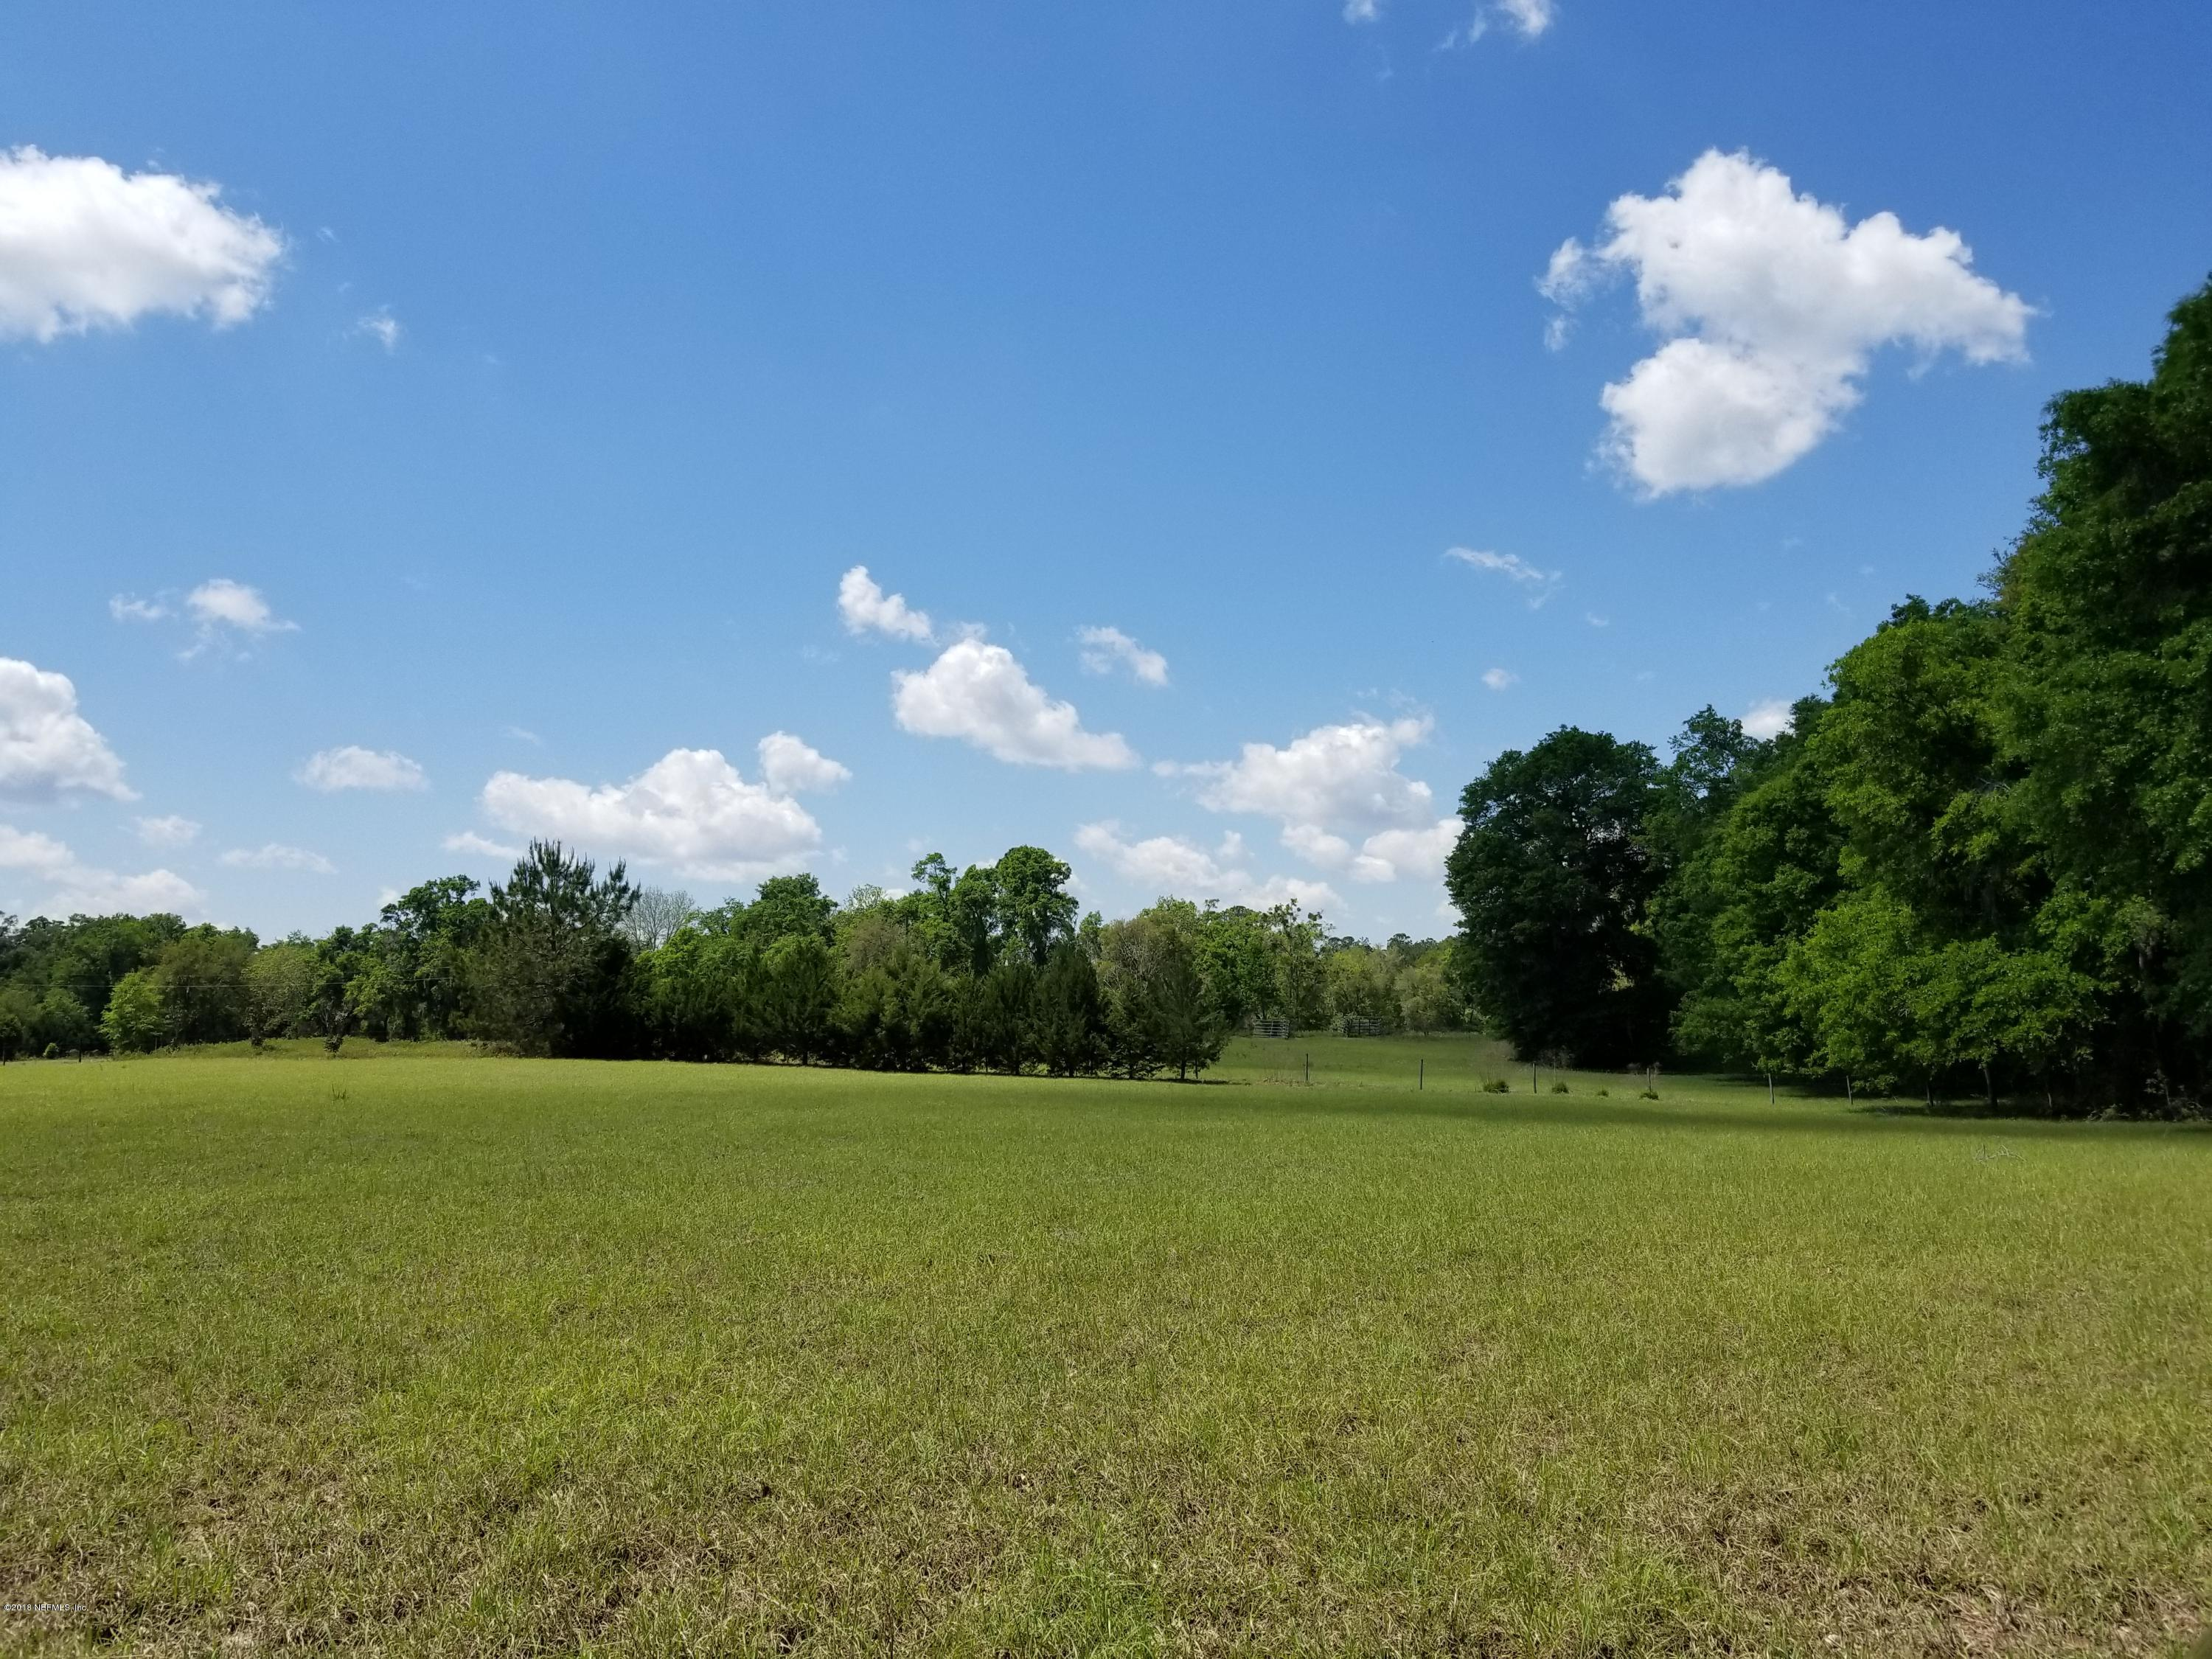 0 COUNTY ROAD 240, LAKE CITY, FLORIDA 32024, ,Vacant land,For sale,COUNTY ROAD 240,931414